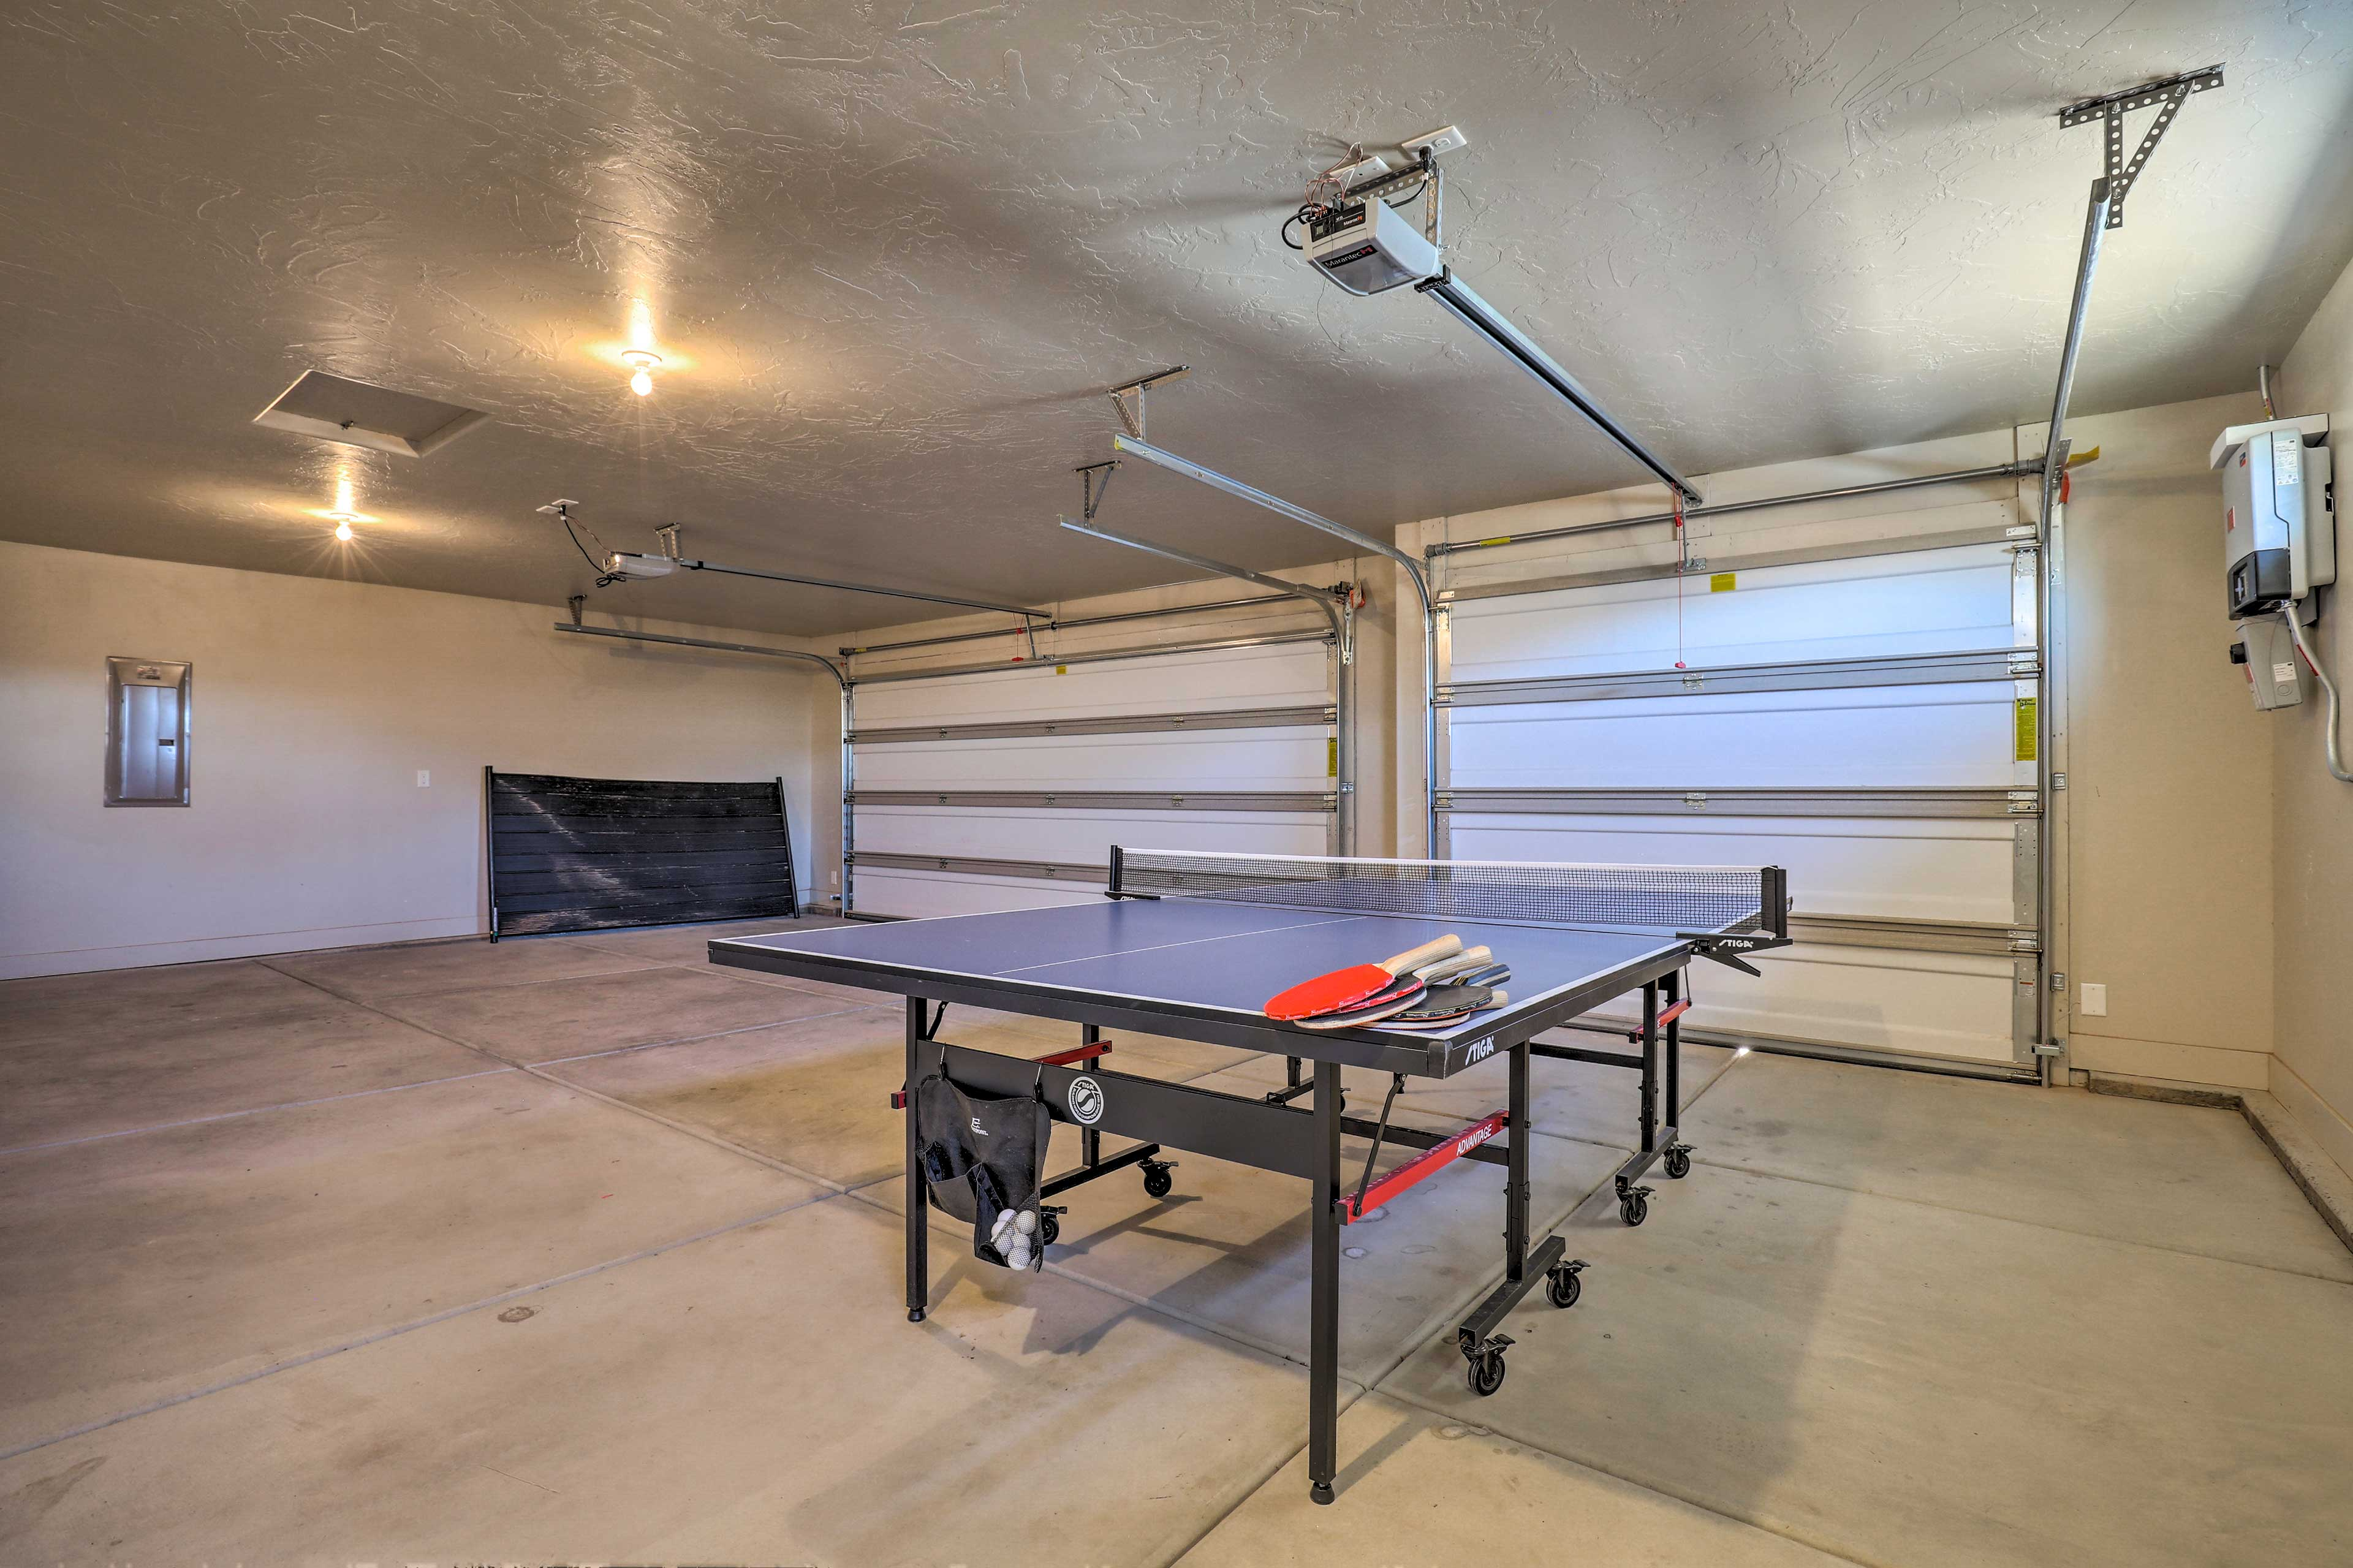 The garage is home to a ping pong table!